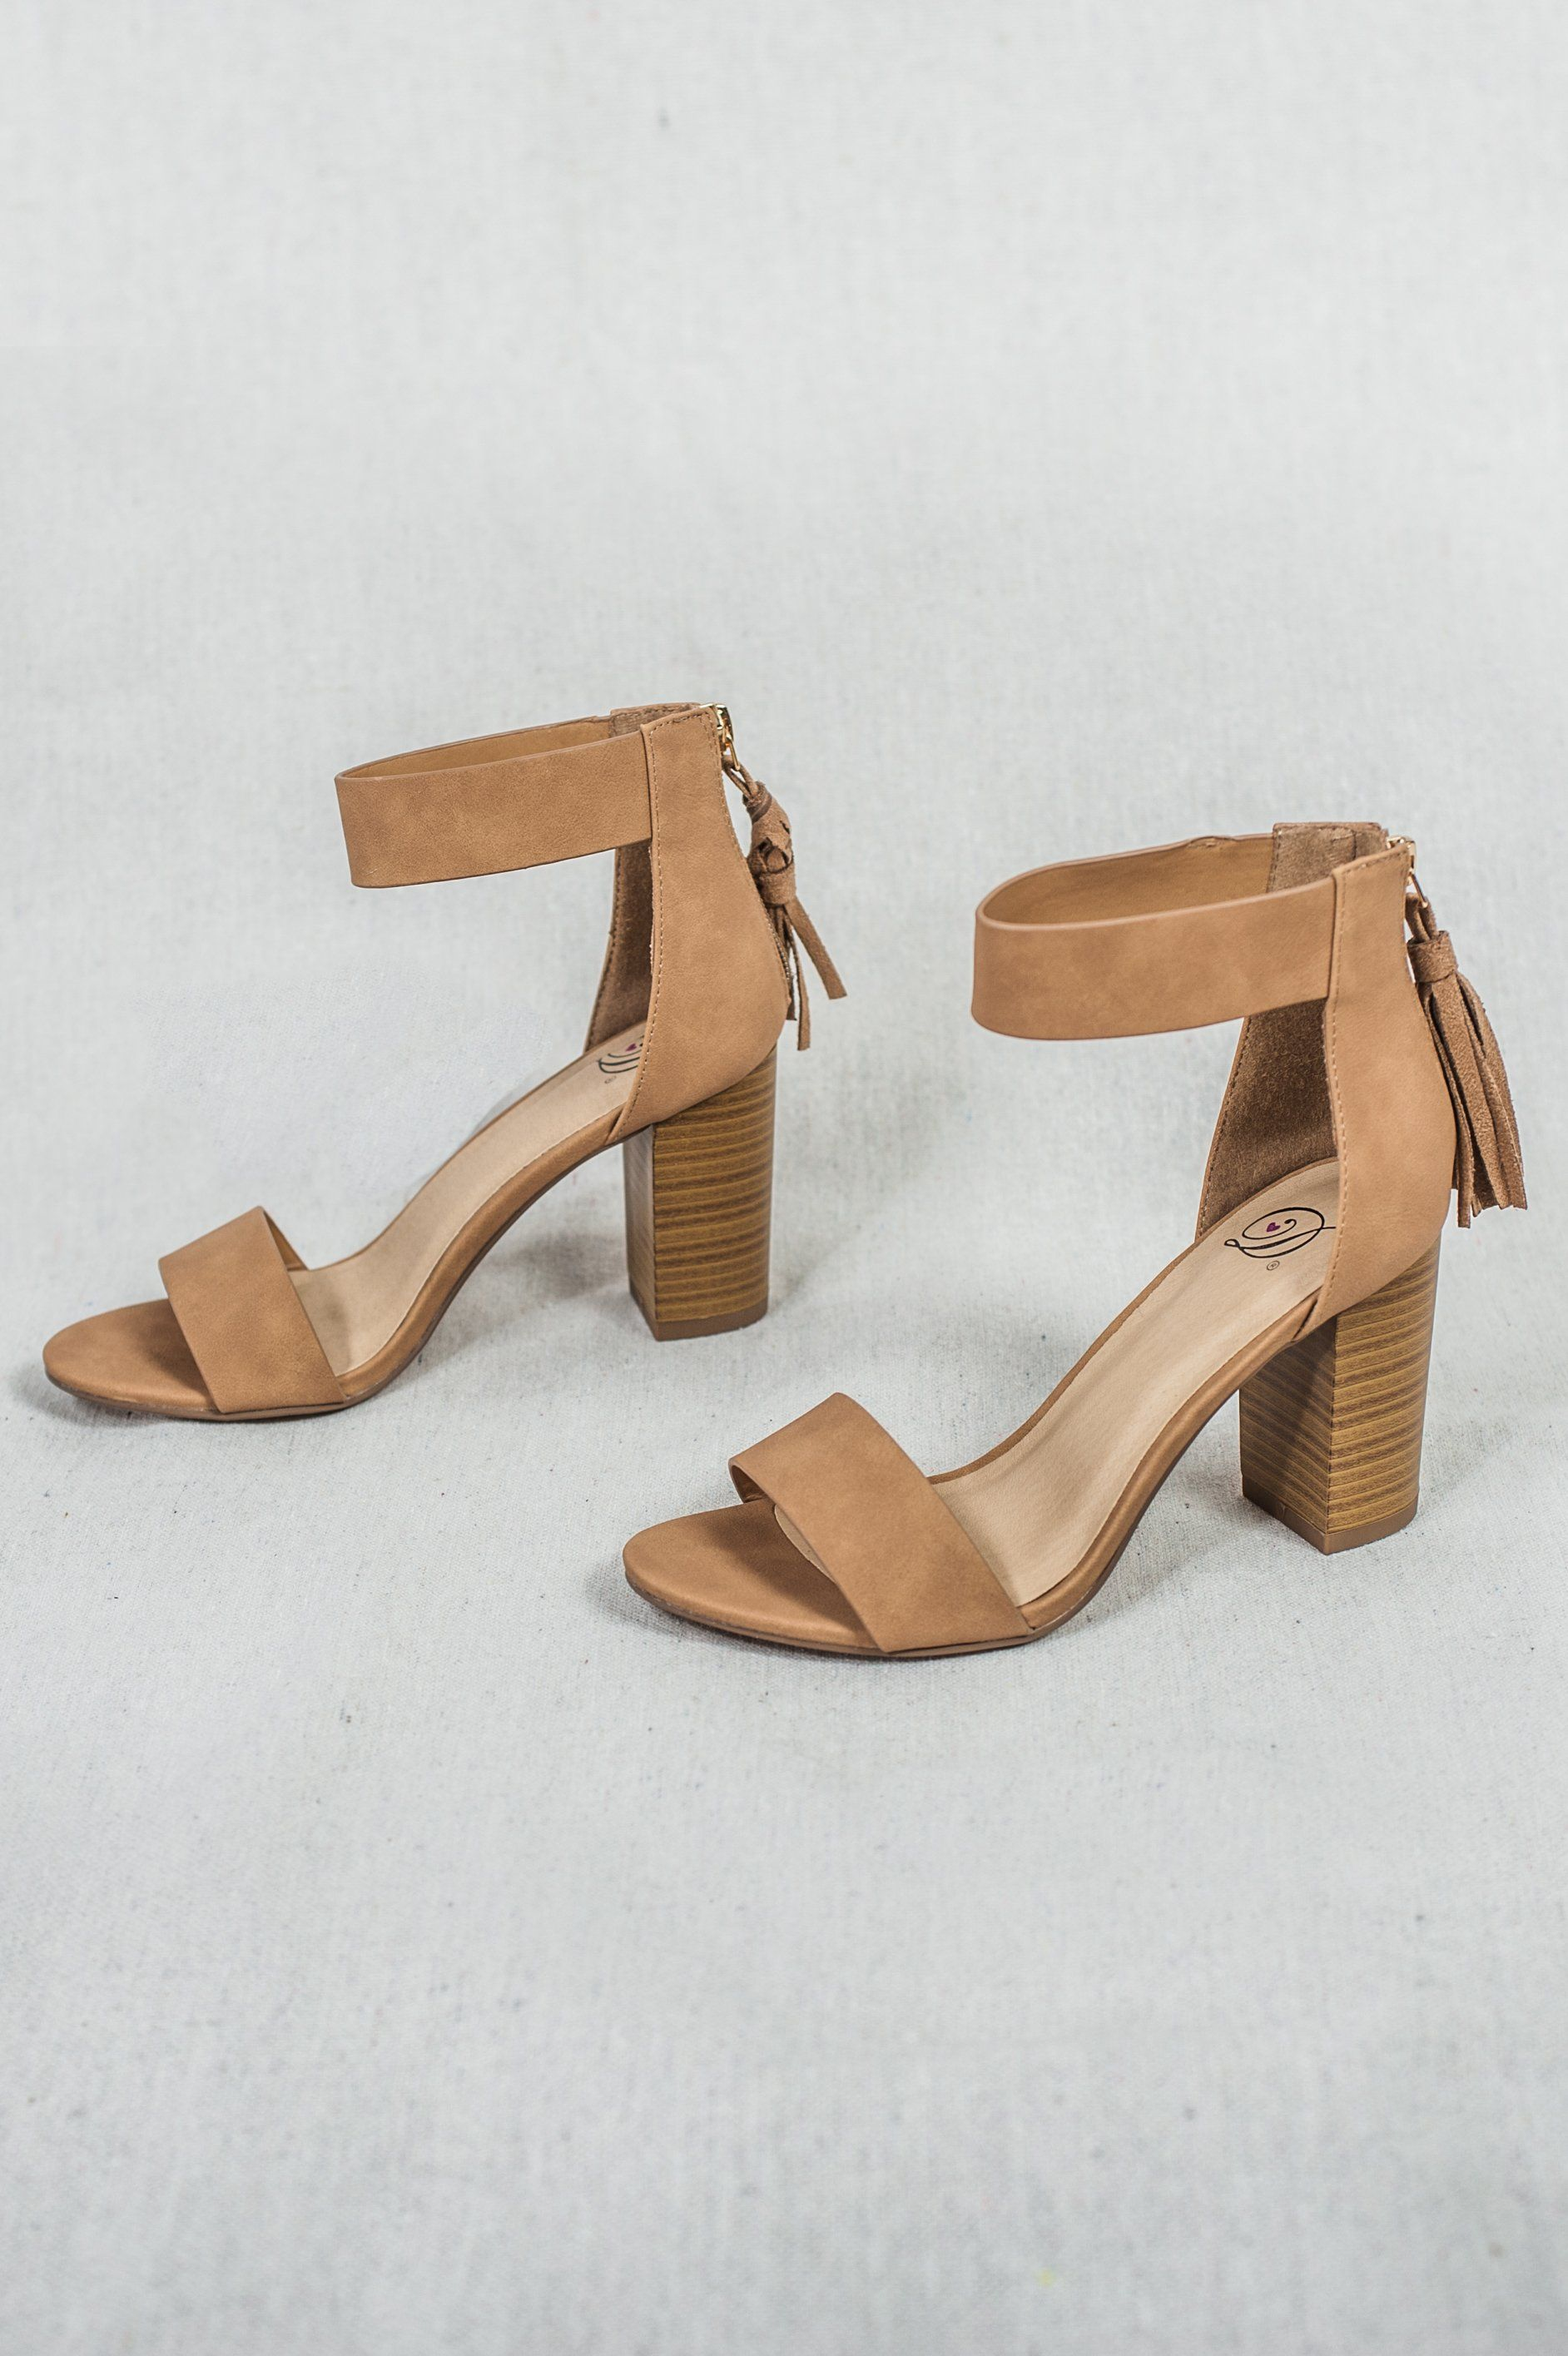 ffd4c4d17df Women s Tan Open Toe Ankle Strap Tassel Sandals